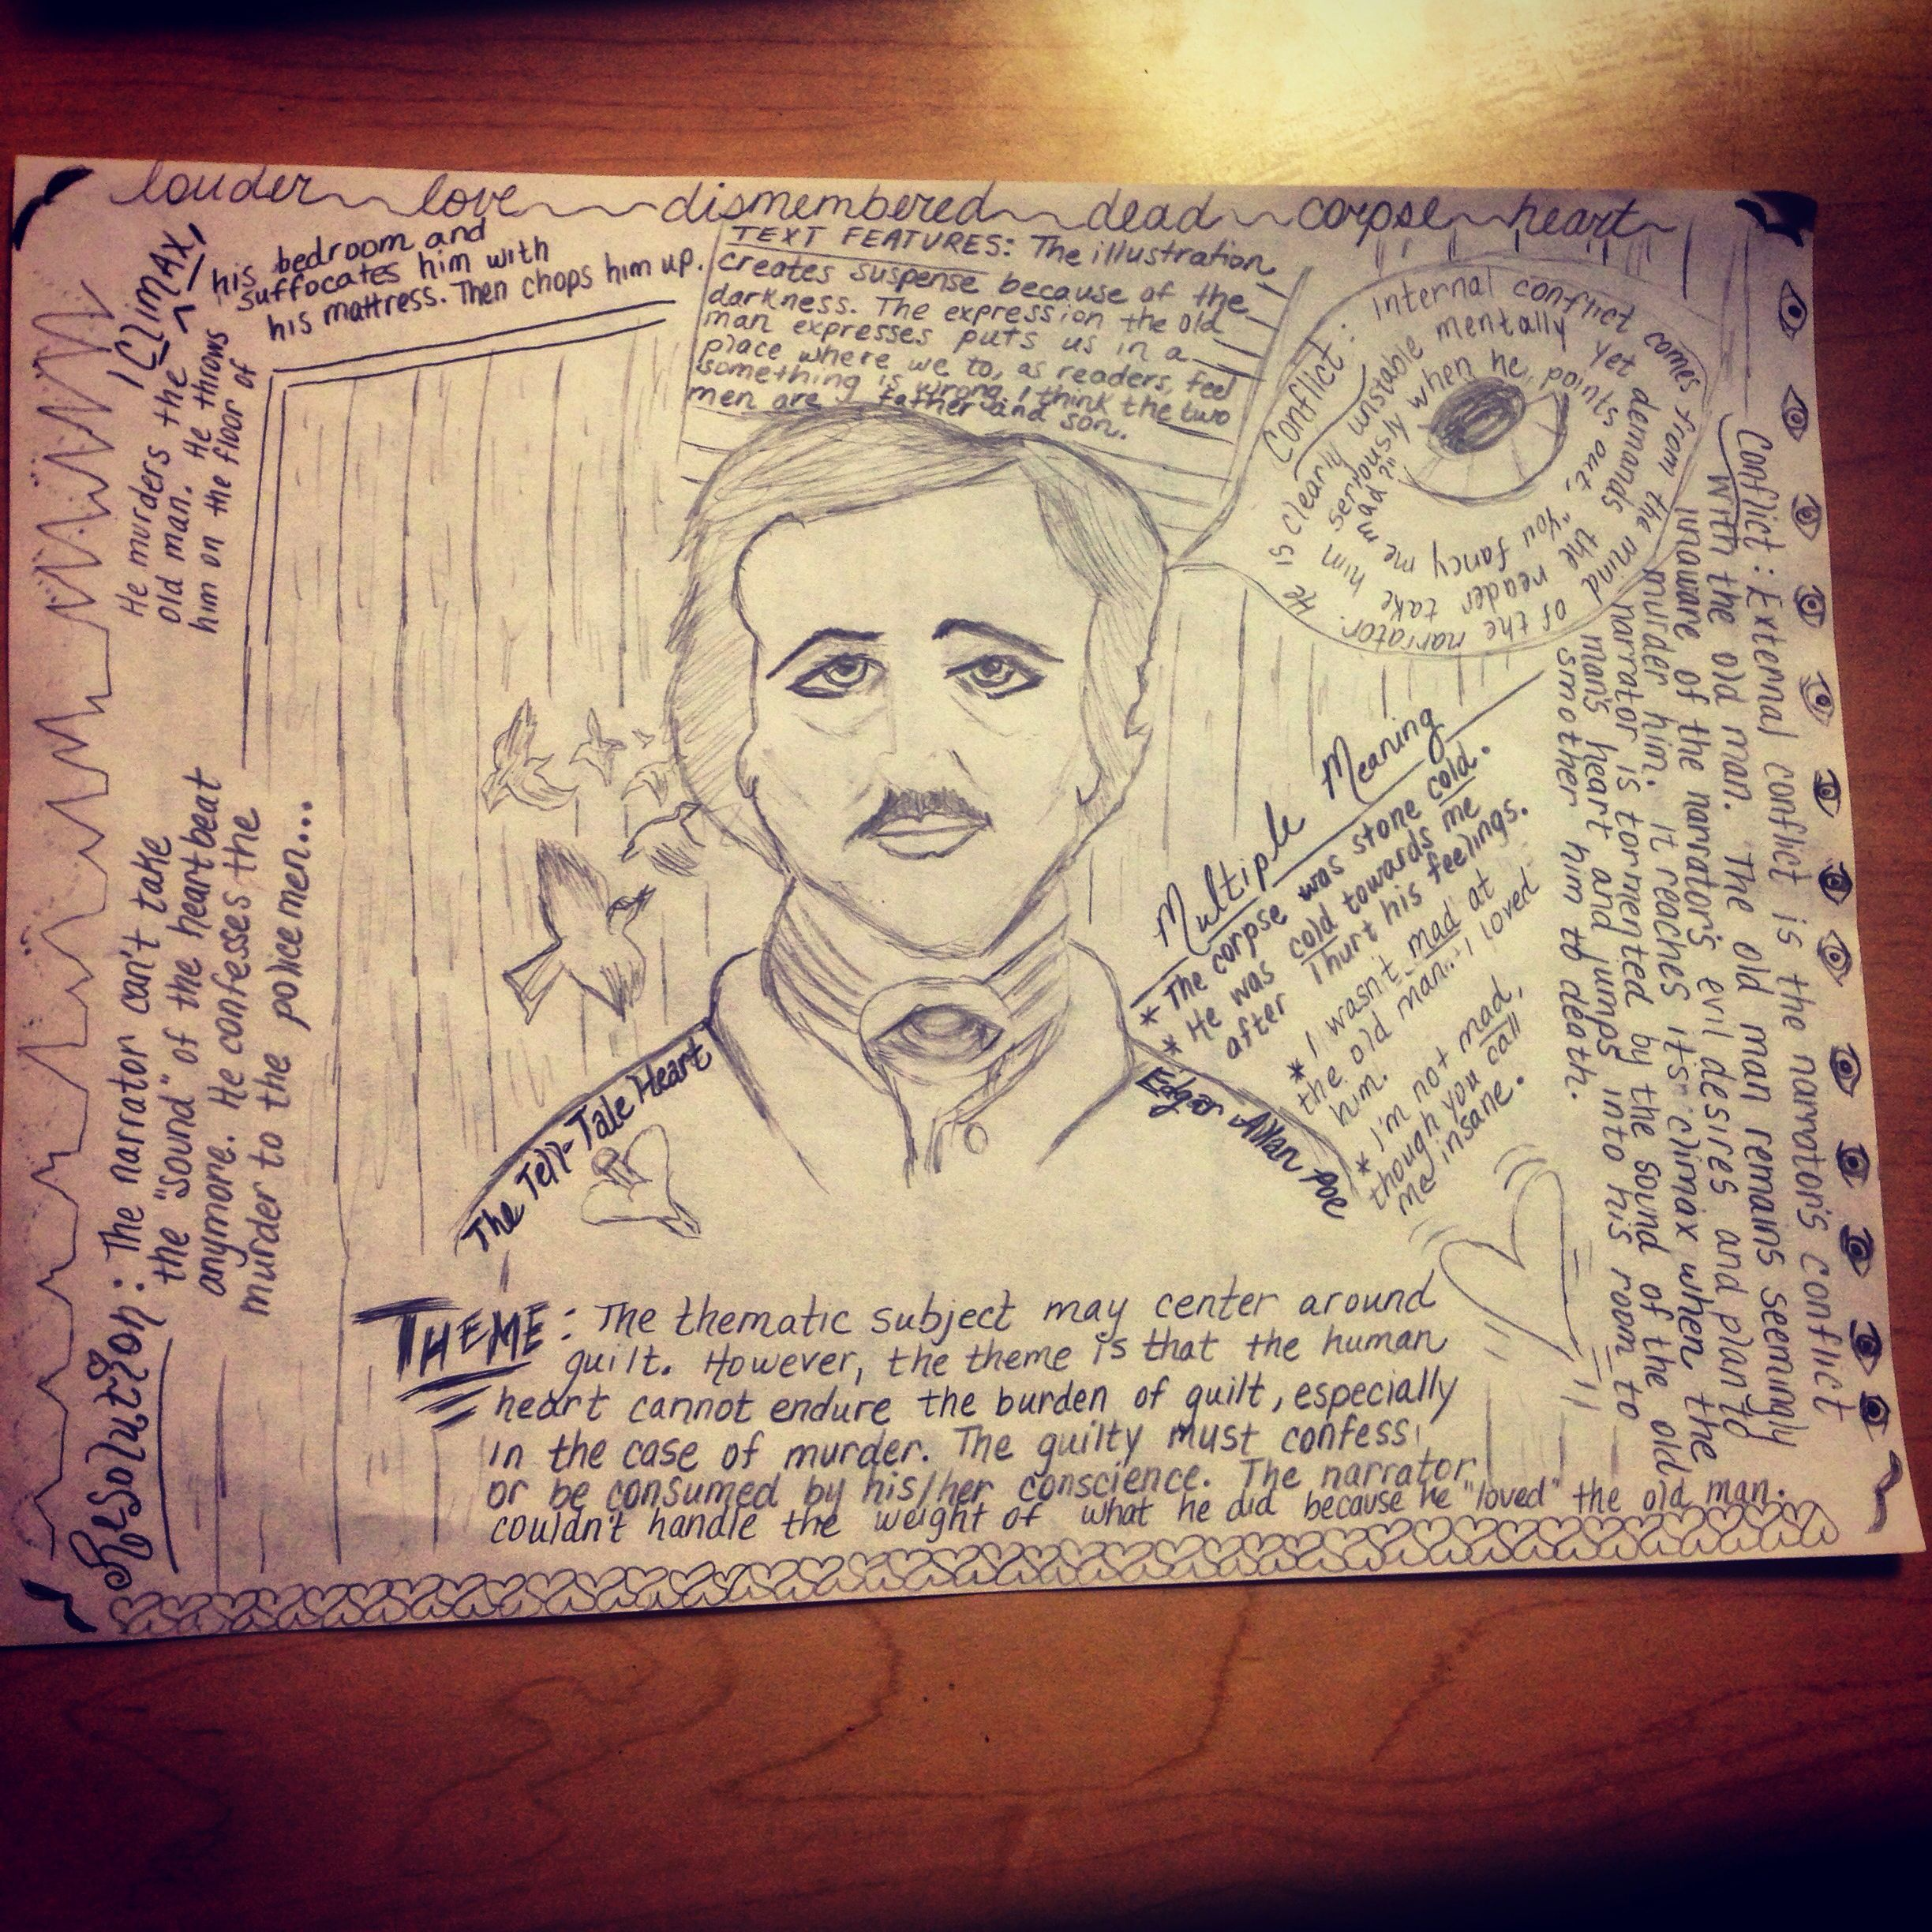 Edgar allan poe the tell tale heart one pager idea for students edgar allan poe the tell tale heart one pager idea for students buycottarizona Images